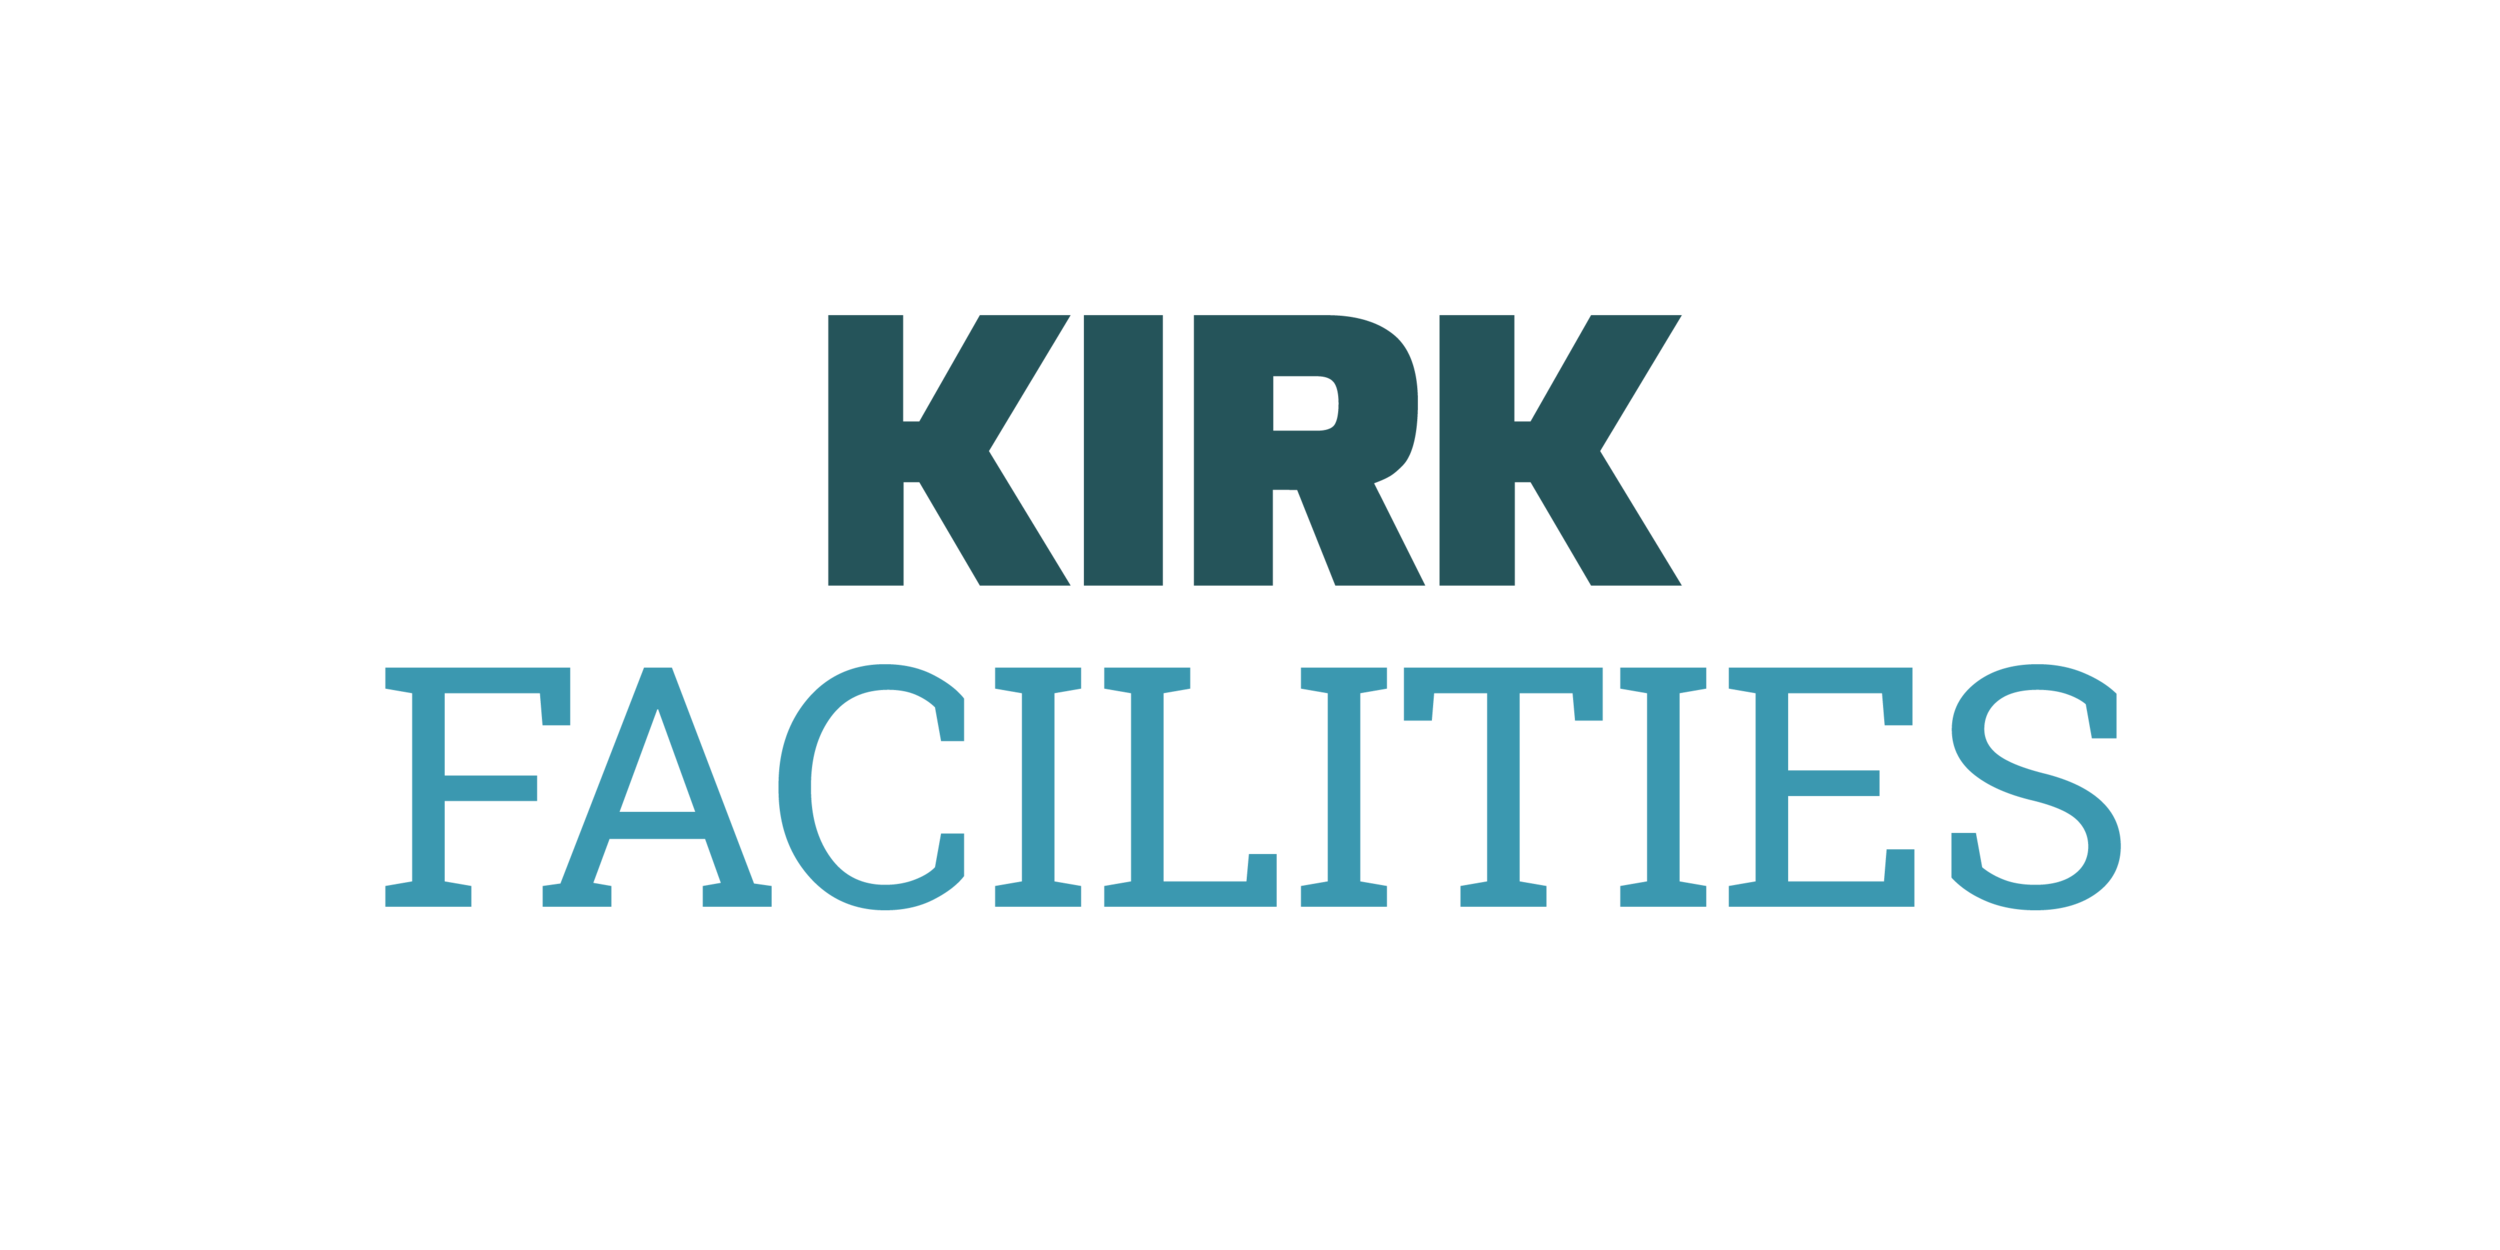 kirk_facilities.png